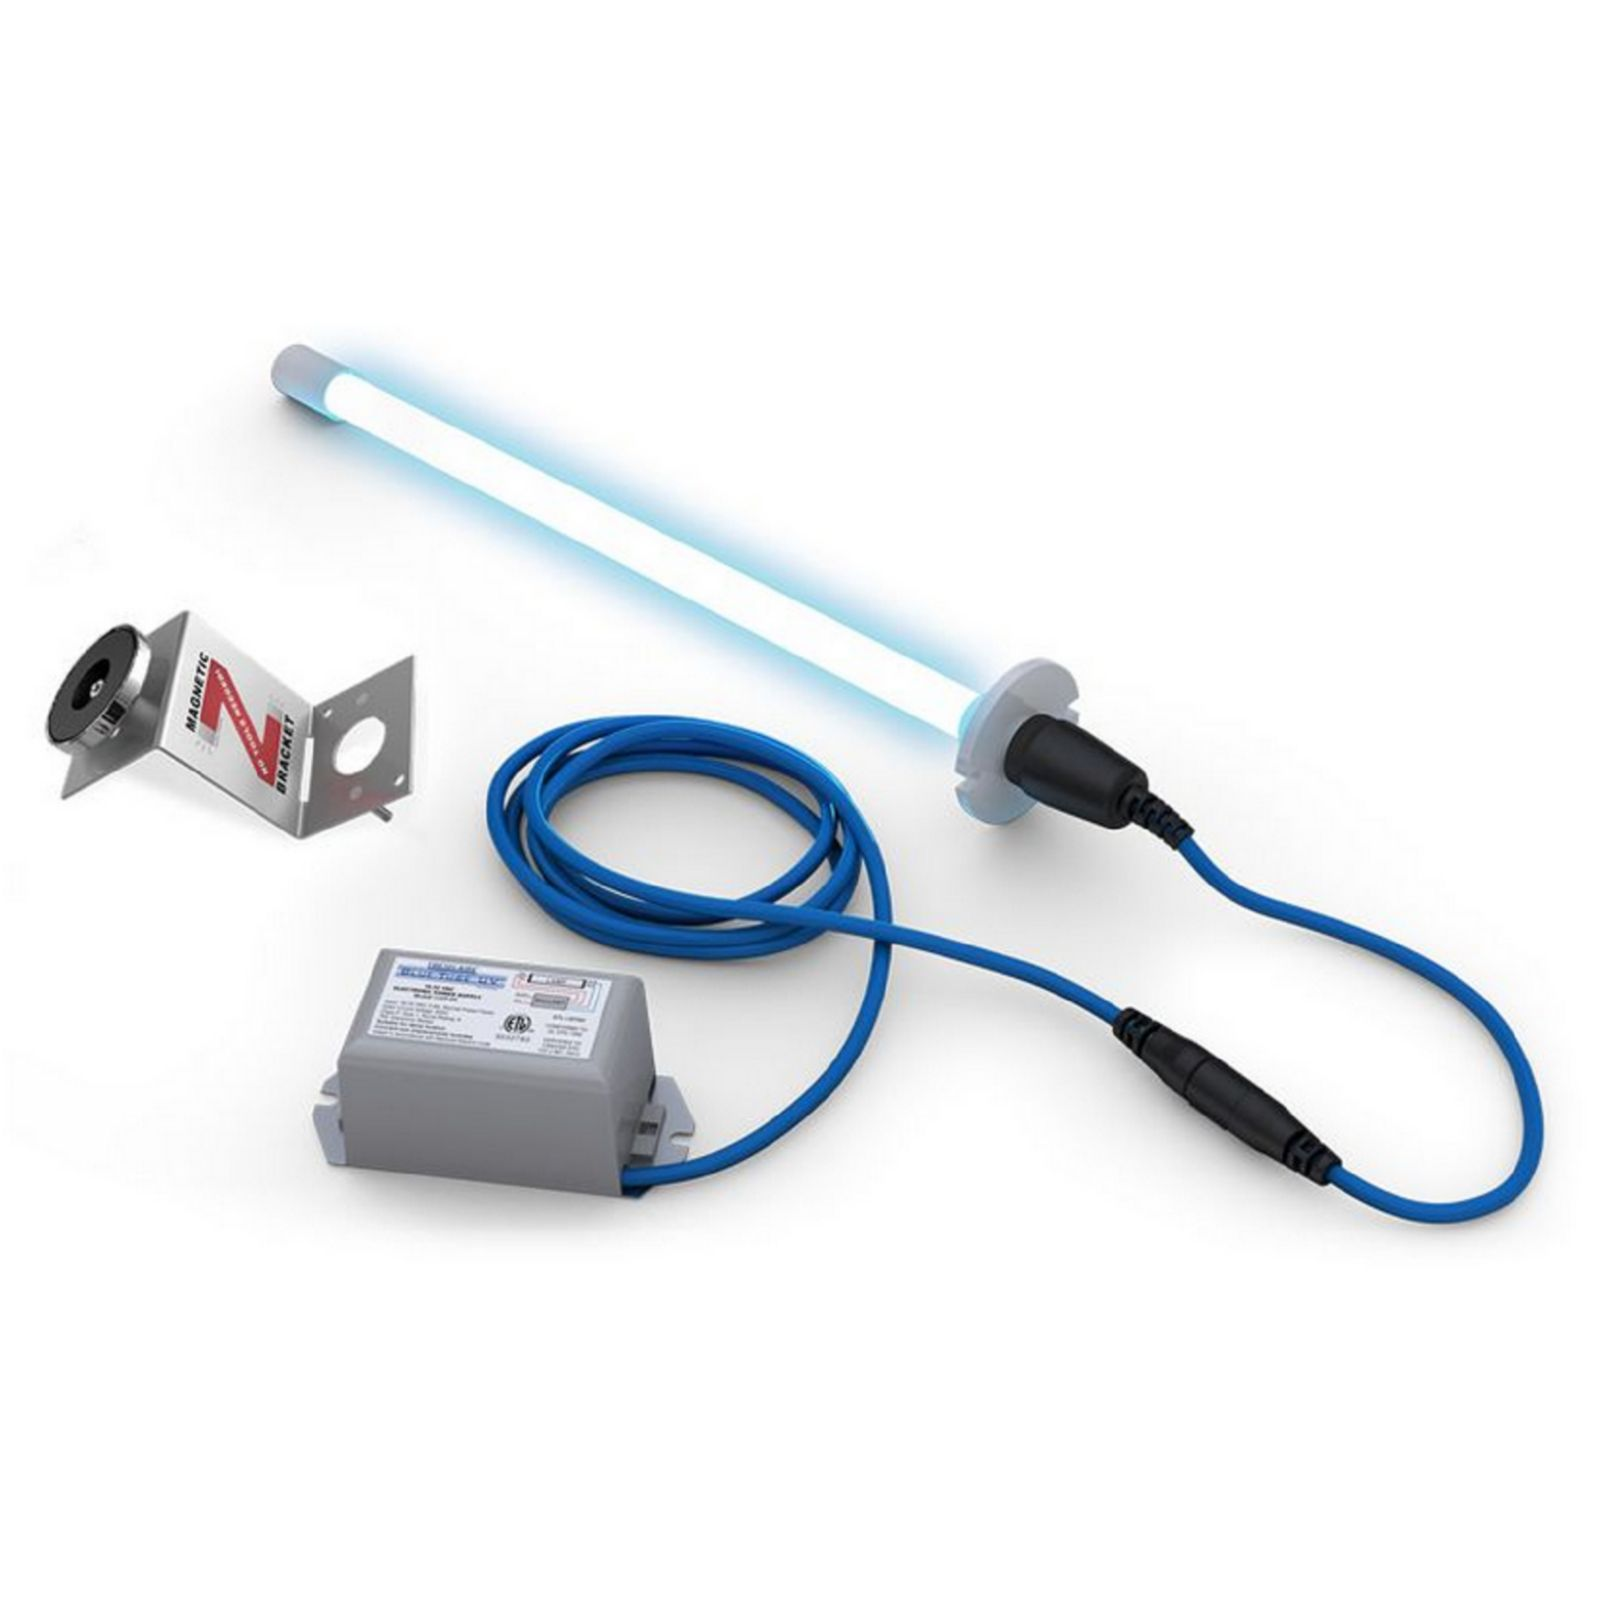 Fresh-Aire TUV-BTER2 - Blue-Tube UV from Fresh-Aire UV, 18-32 VAC power supply and 2 year UV-C lamp.